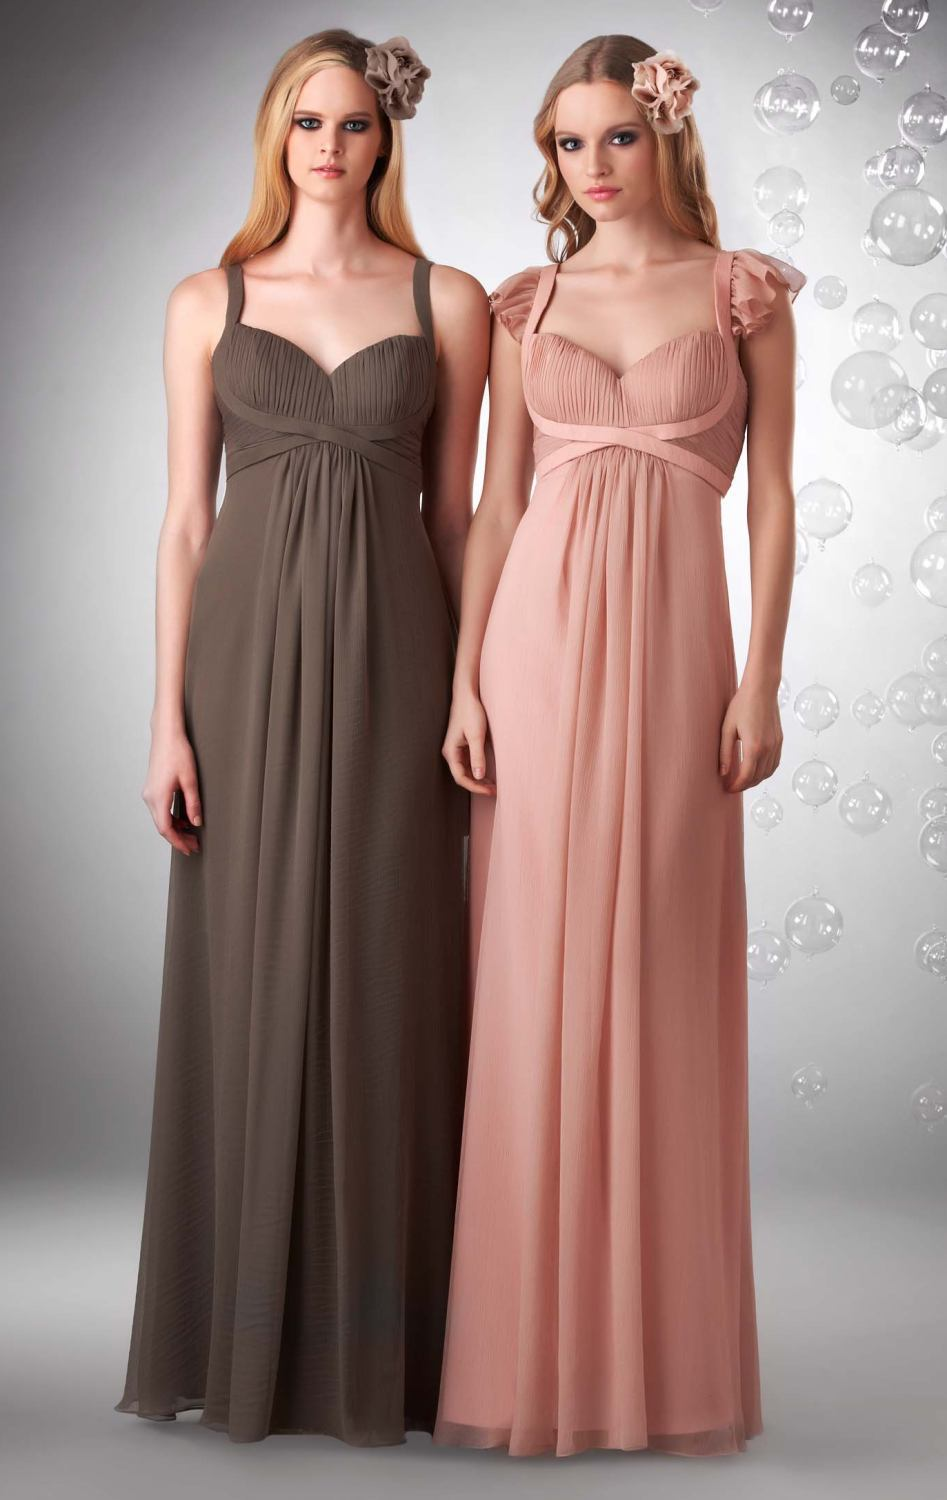 Elegant-Latest-Design-Pink-Maternity-Bridesmaid-Dress-Patterns-Bridesmaid- Dress-For-Pregnant-Women-With-Sleeves.jpg